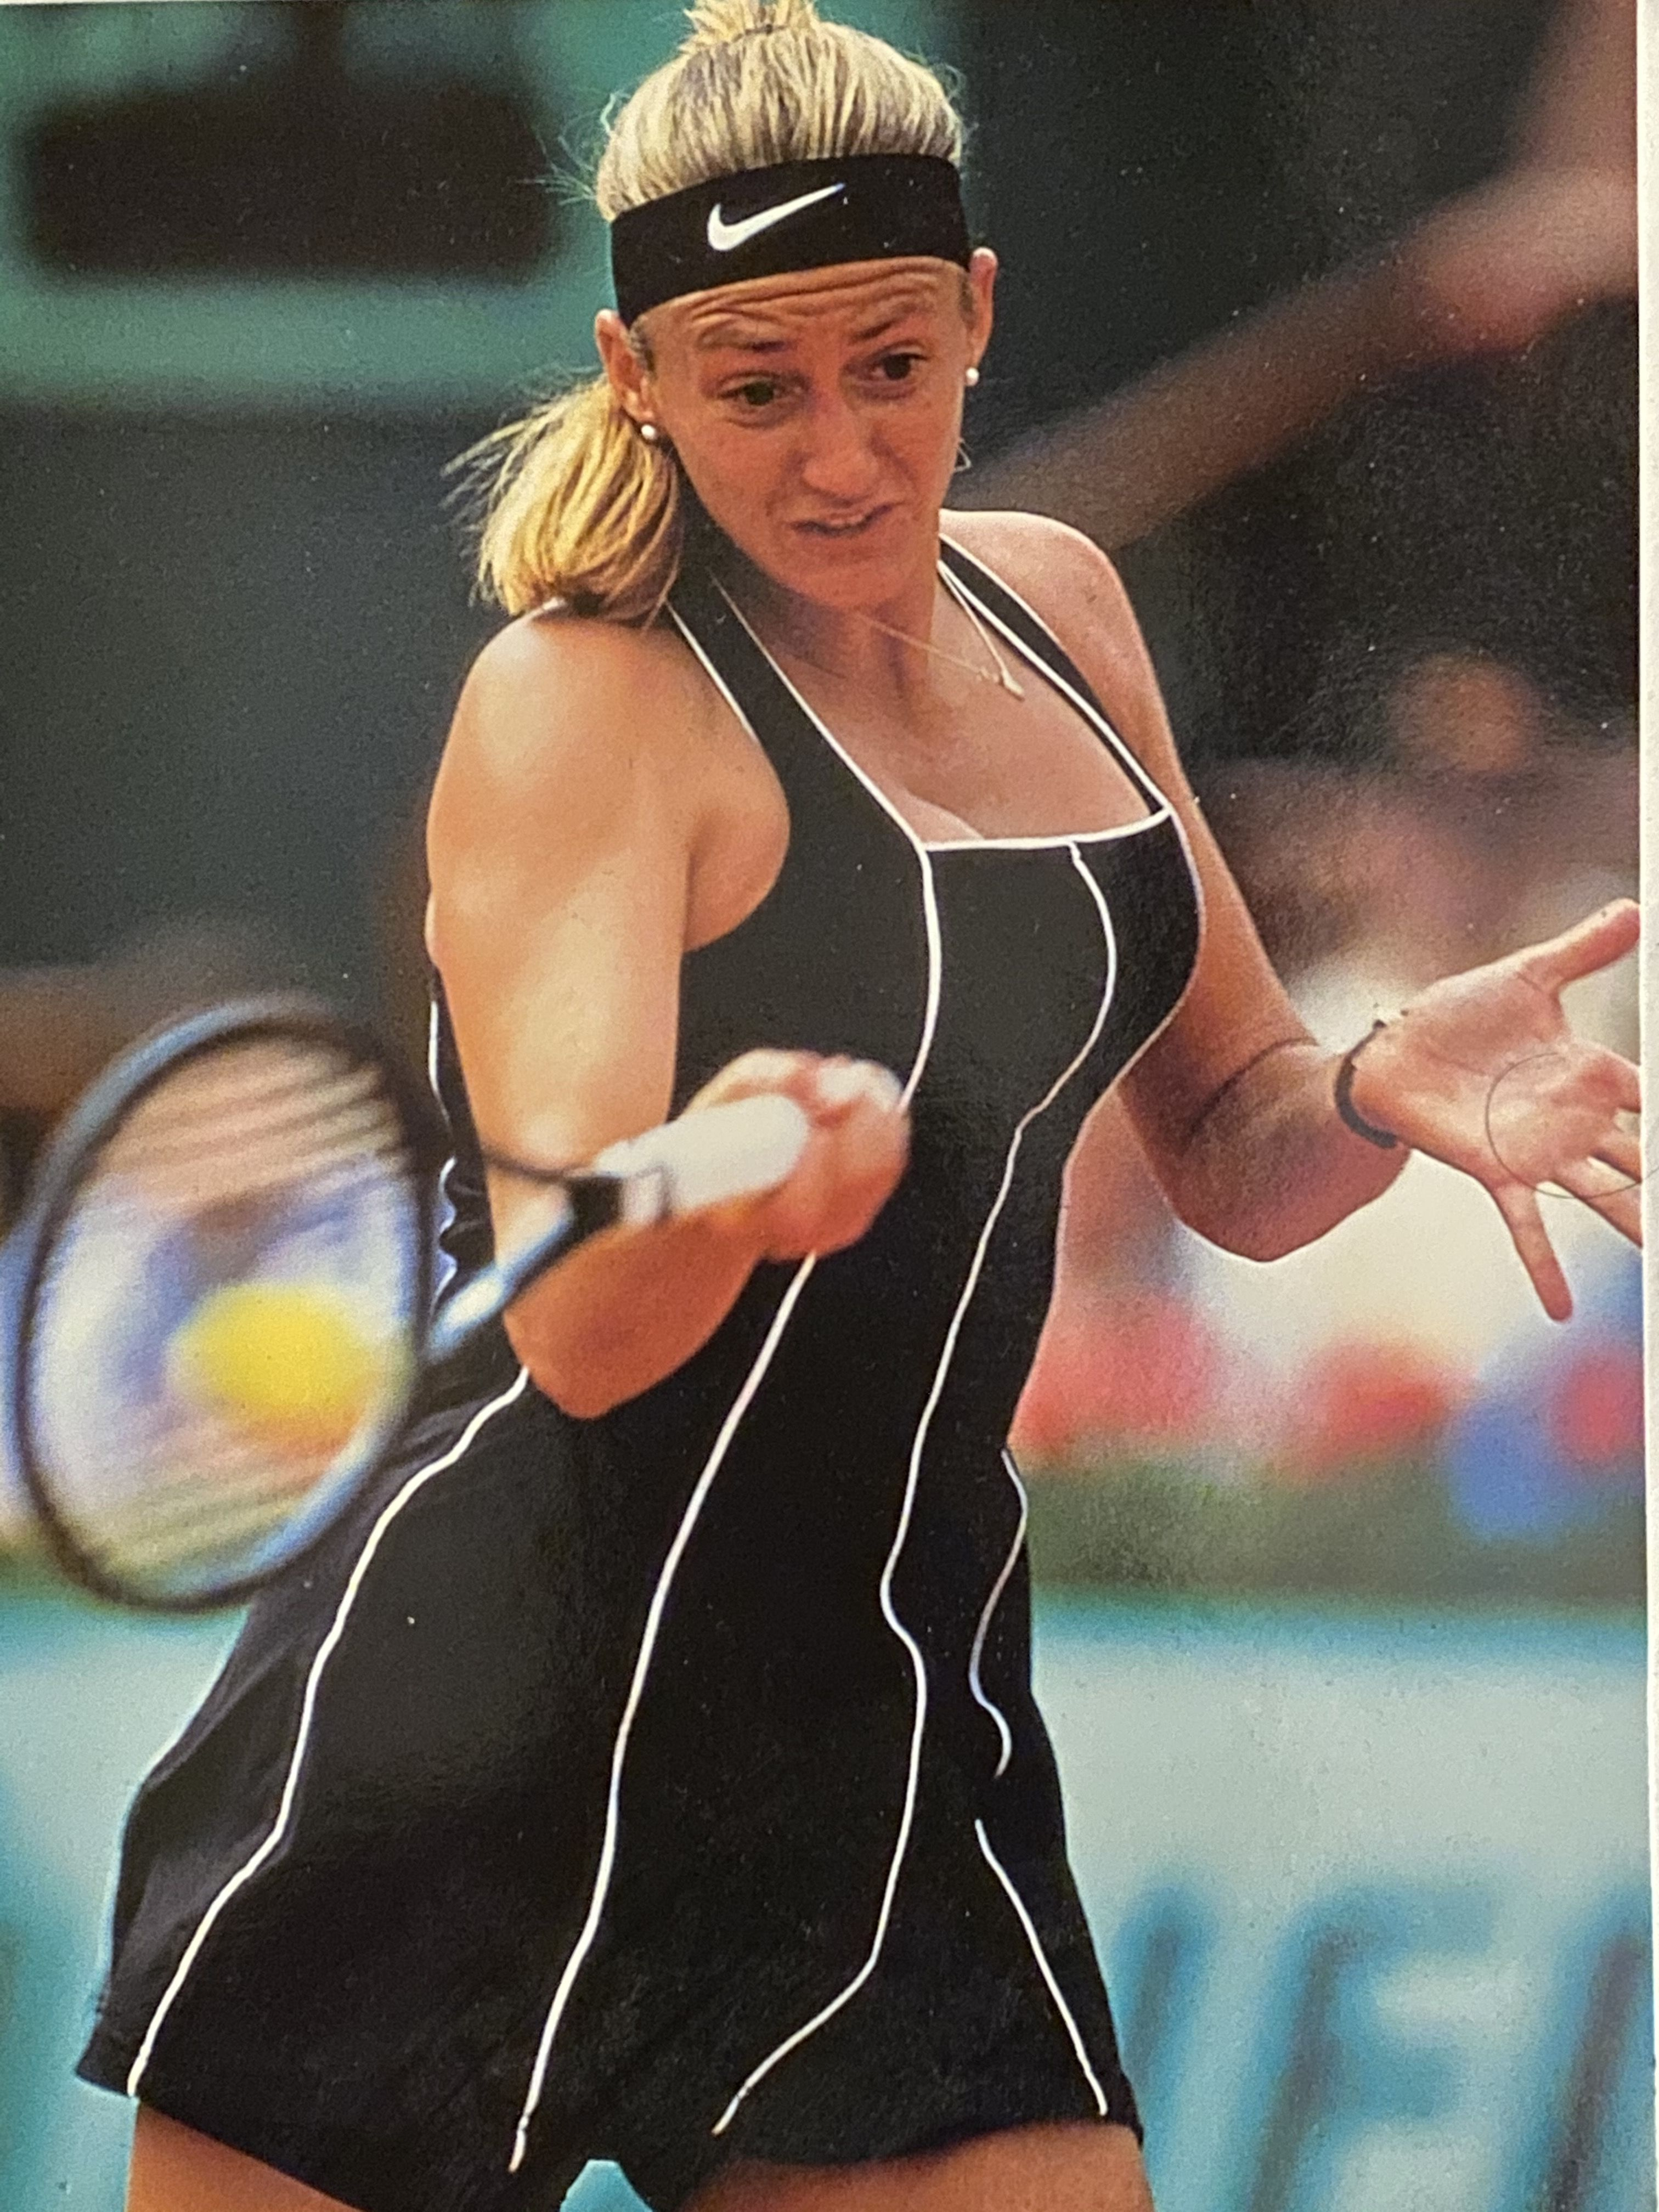 Pin On Tennis Players Female